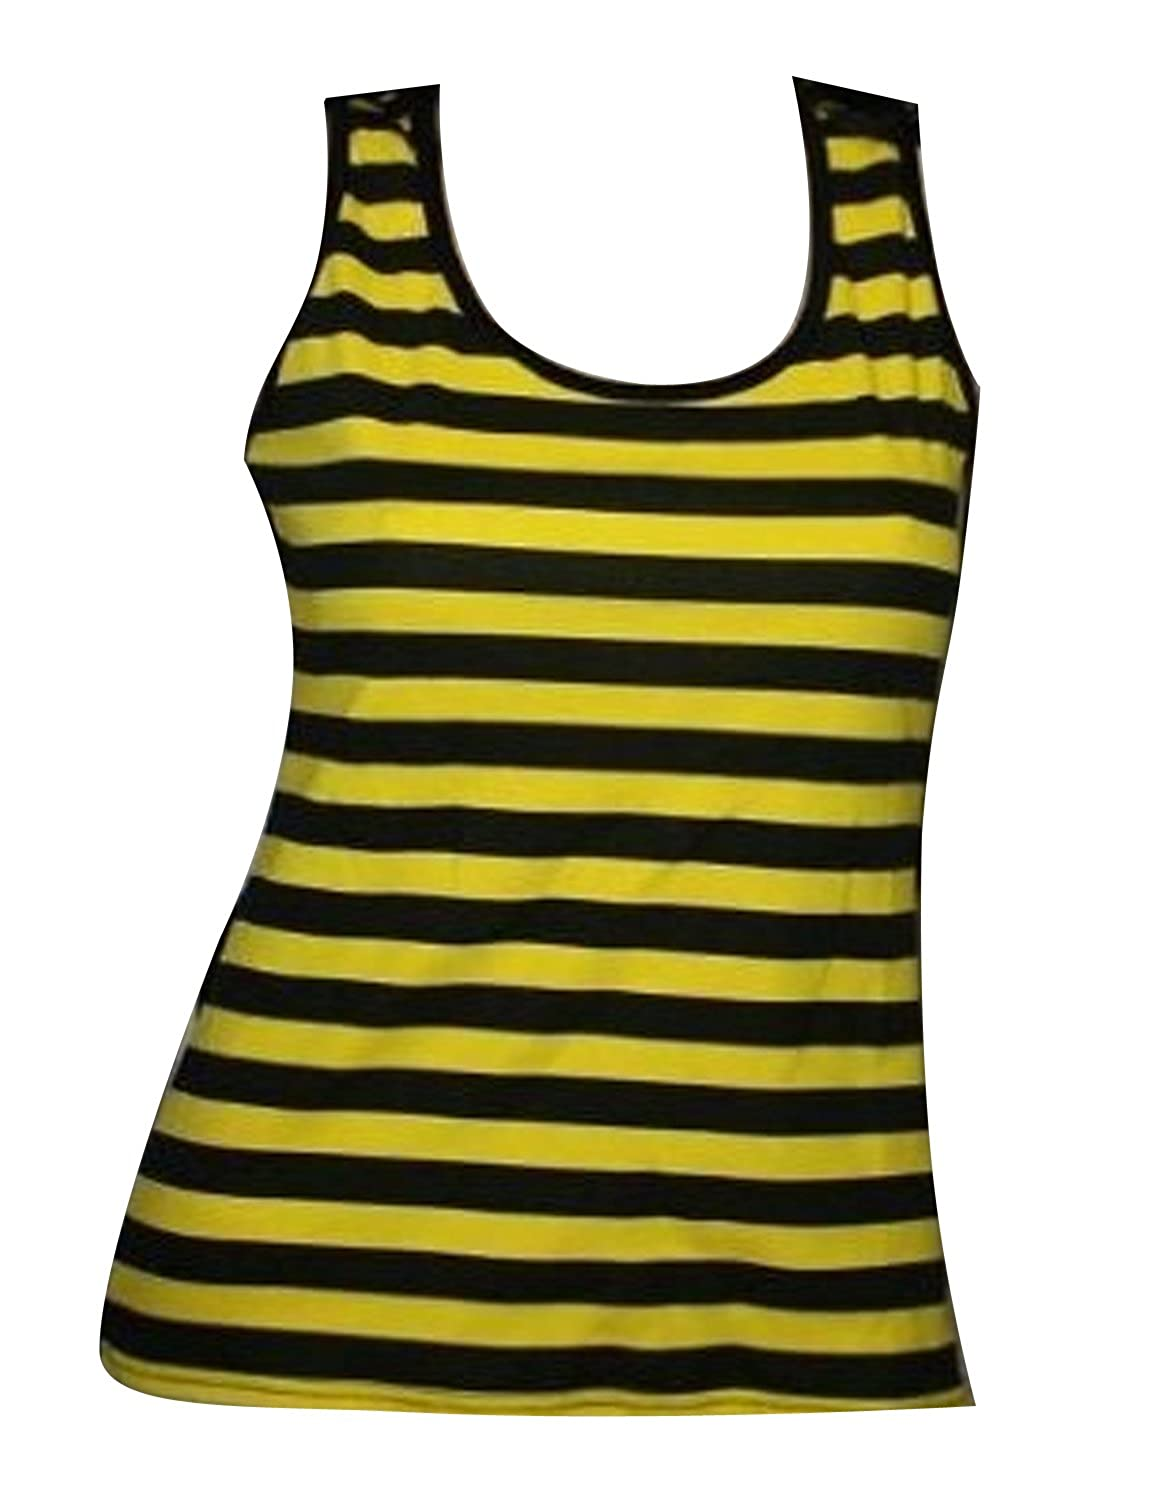 Bumble Bee Yellow And Black Stripes Tank Top Vest